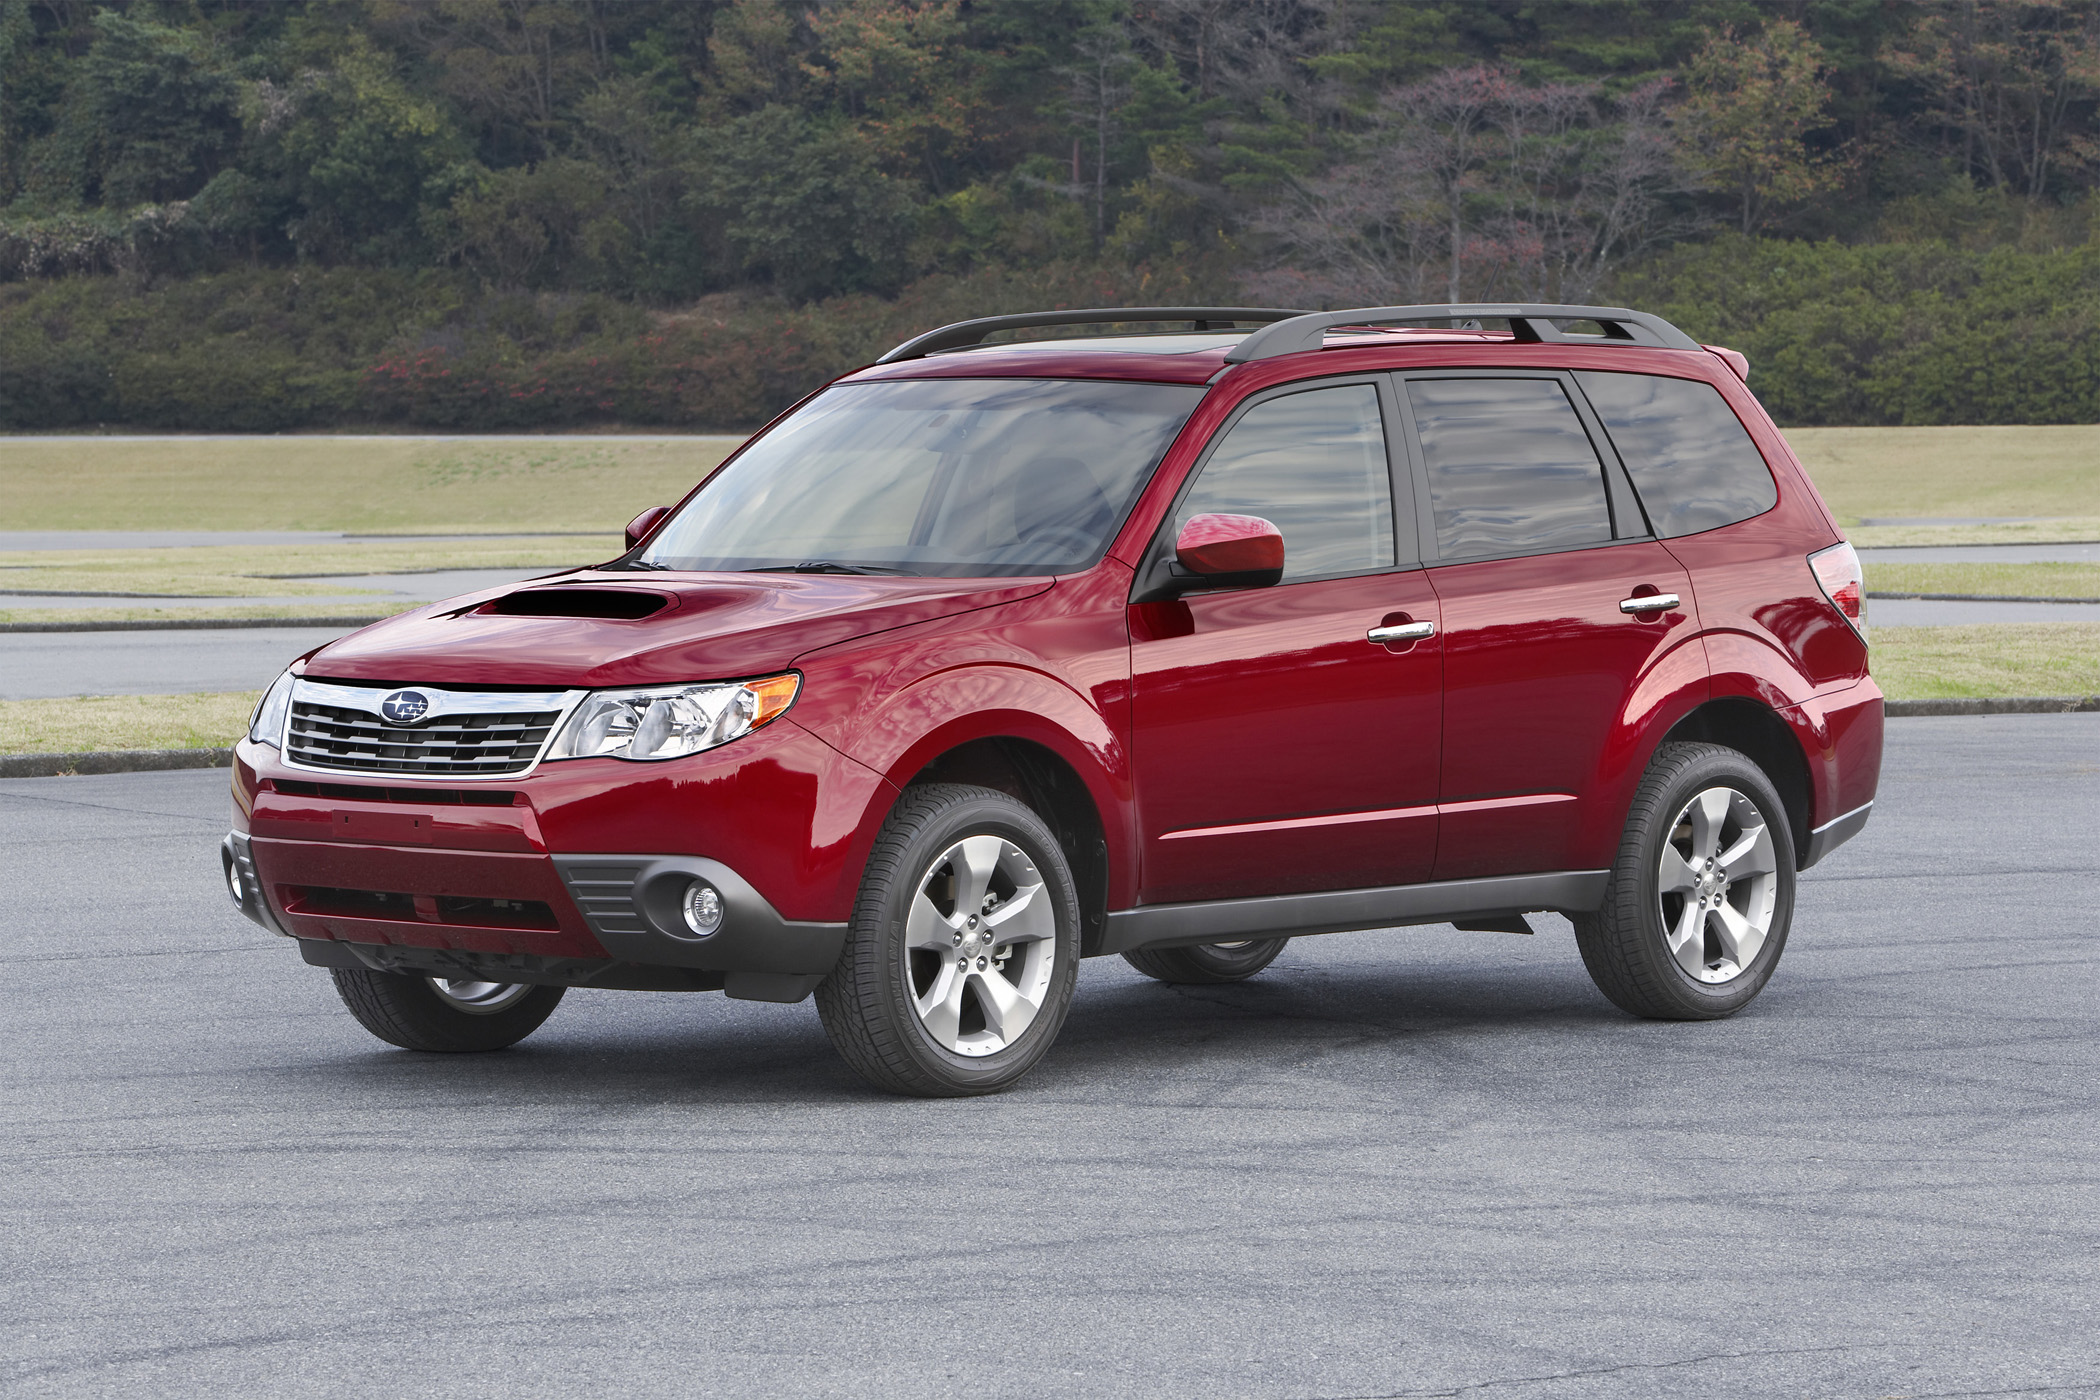 all new subaru forester is more suv looking for 2009 new on wheels groovecar. Black Bedroom Furniture Sets. Home Design Ideas